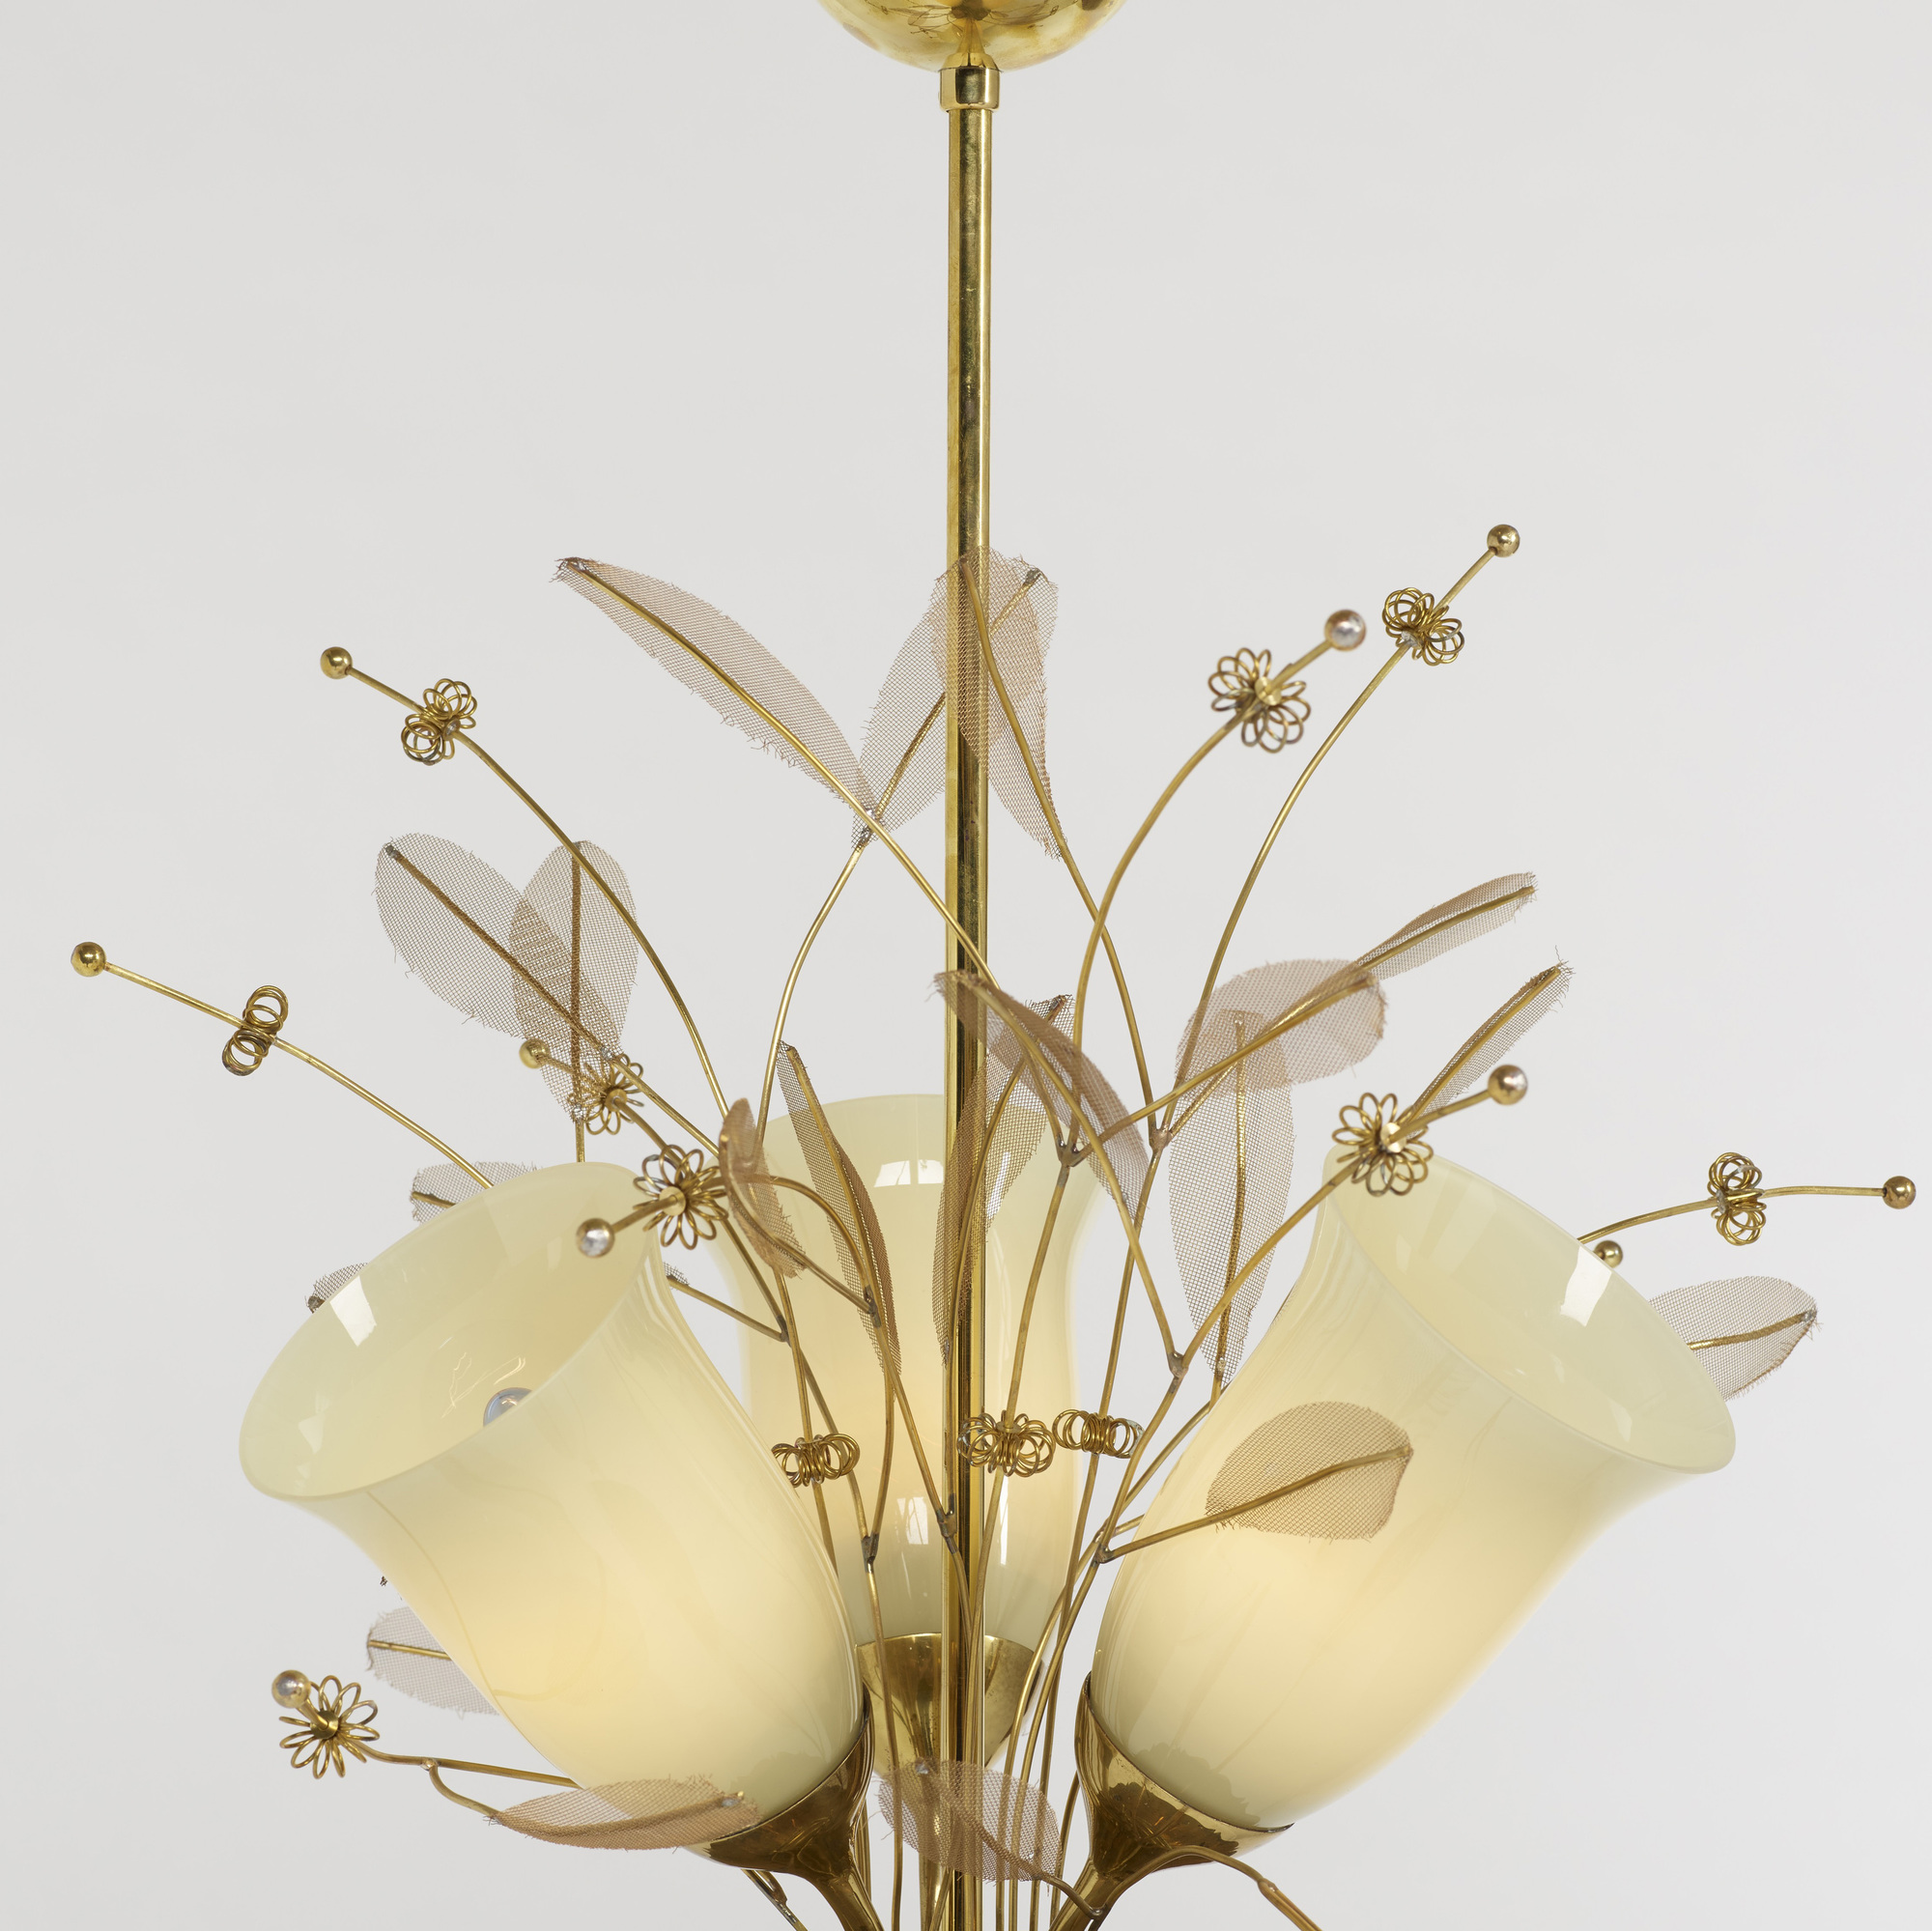 252: Paavo Tynell / chandelier, model 9029/3 (2 of 2)